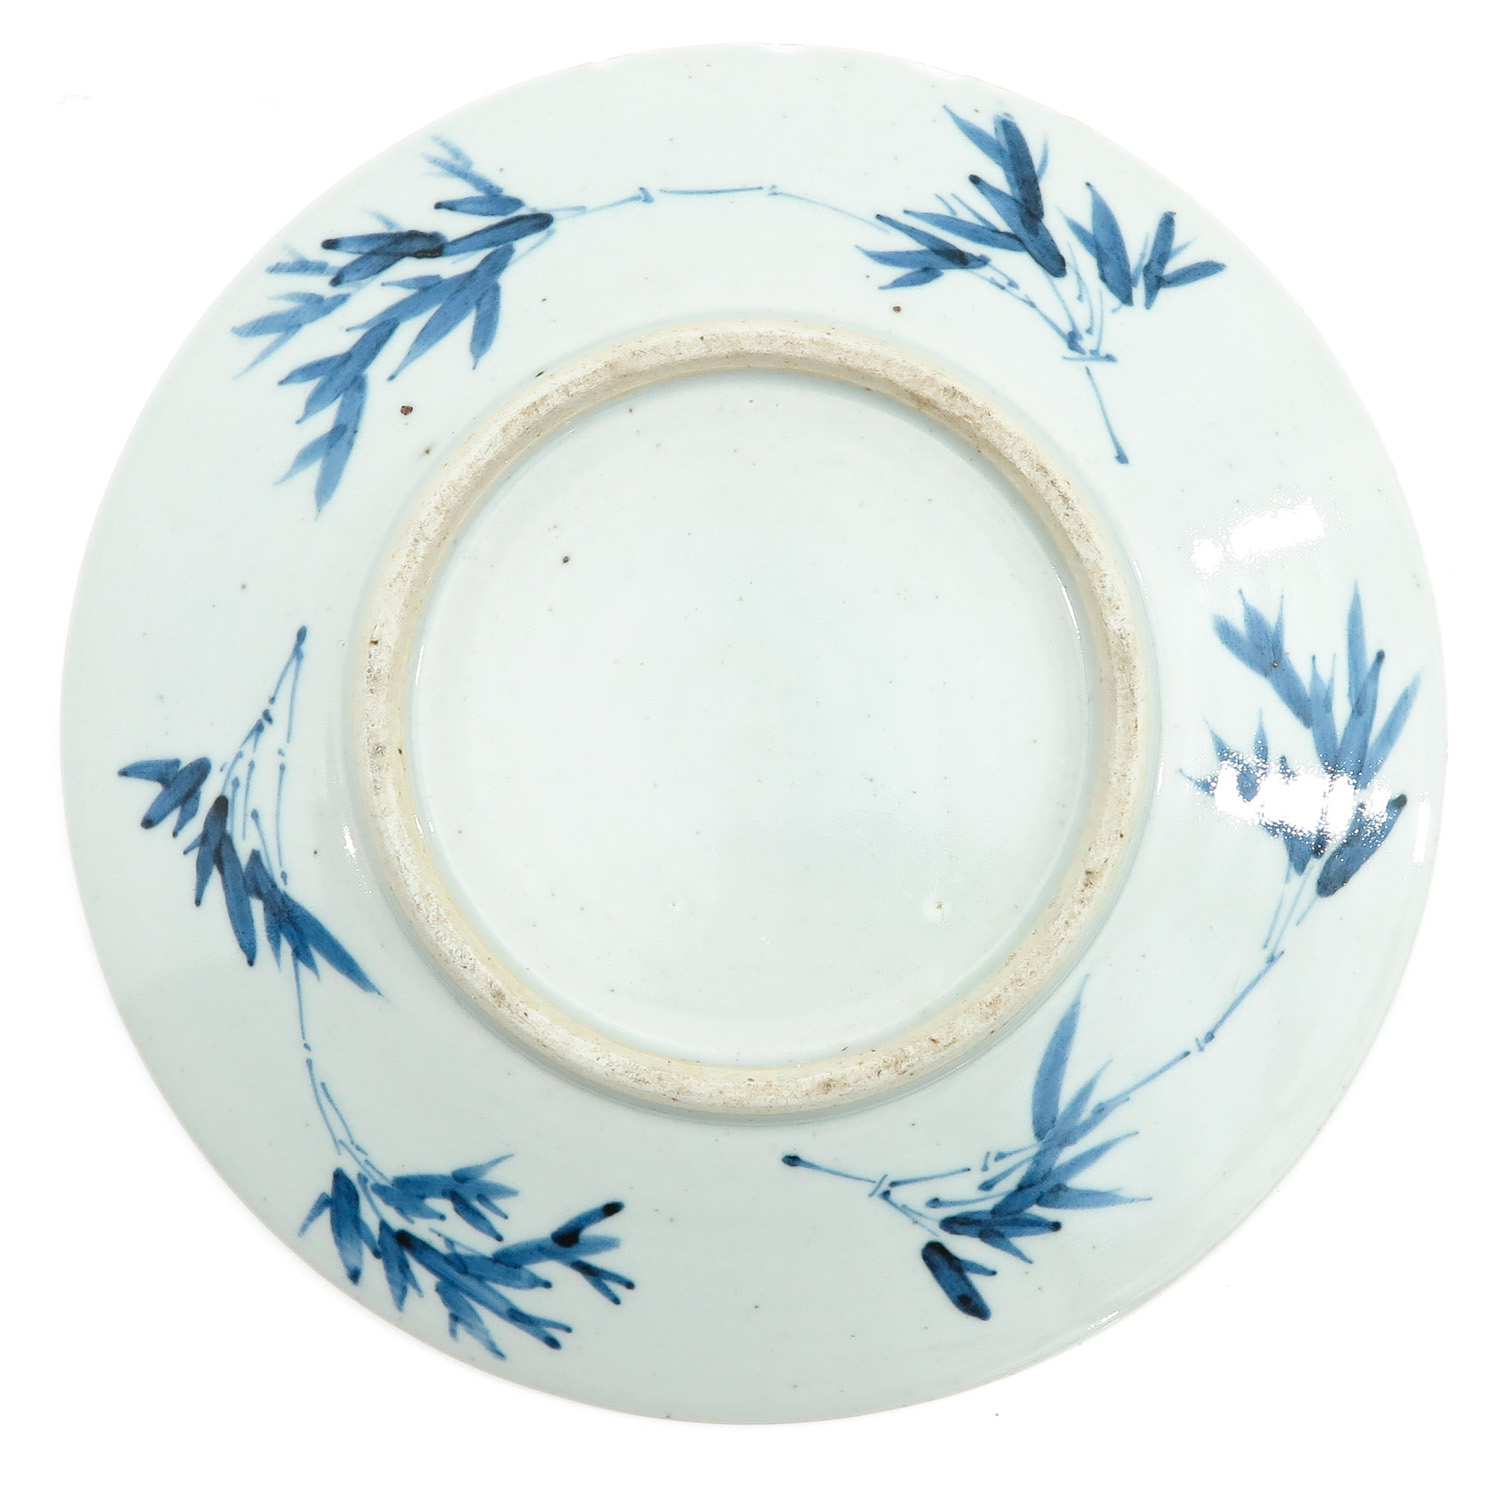 A Blue and White Dish - Image 2 of 5